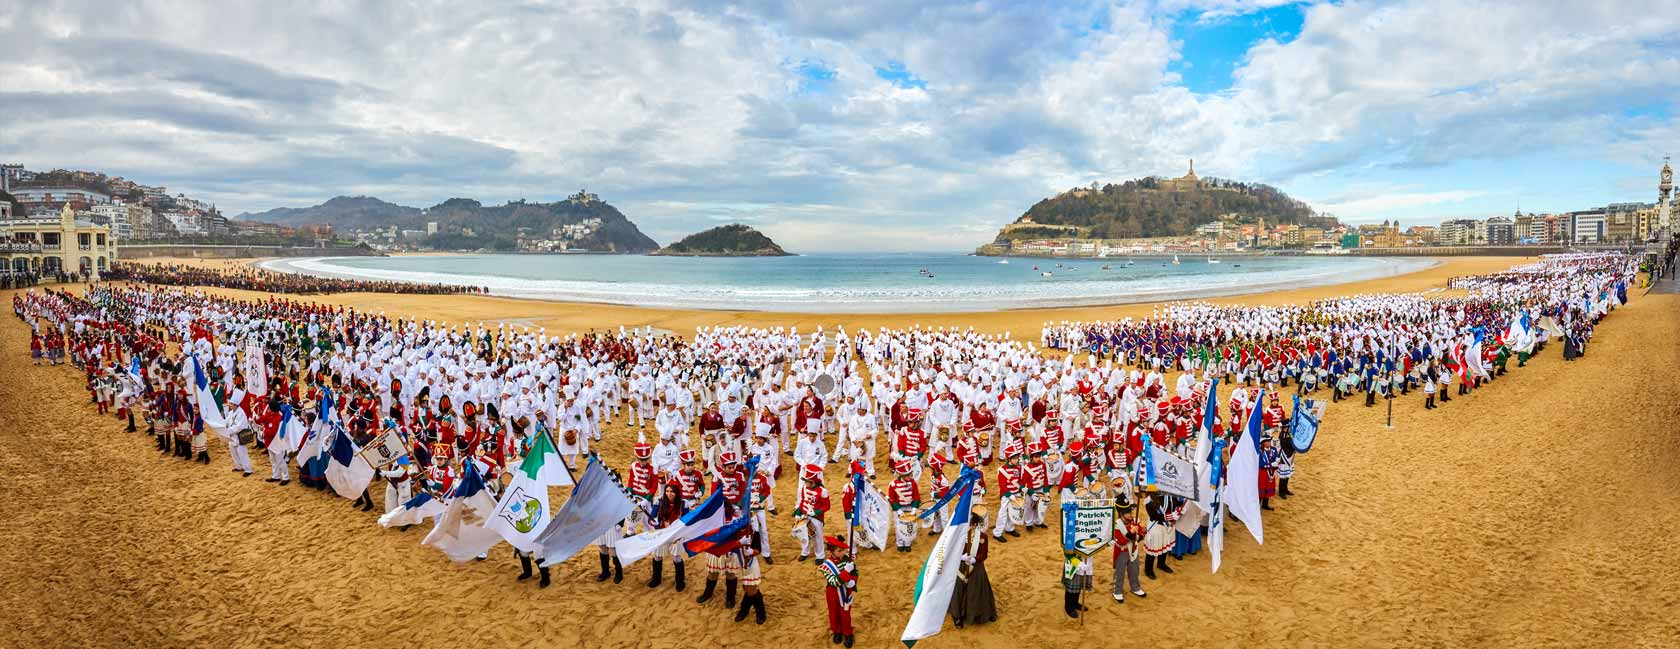 SAN SEBASTIAN EUROPEAN CAPITAL OF CULTURE 2016